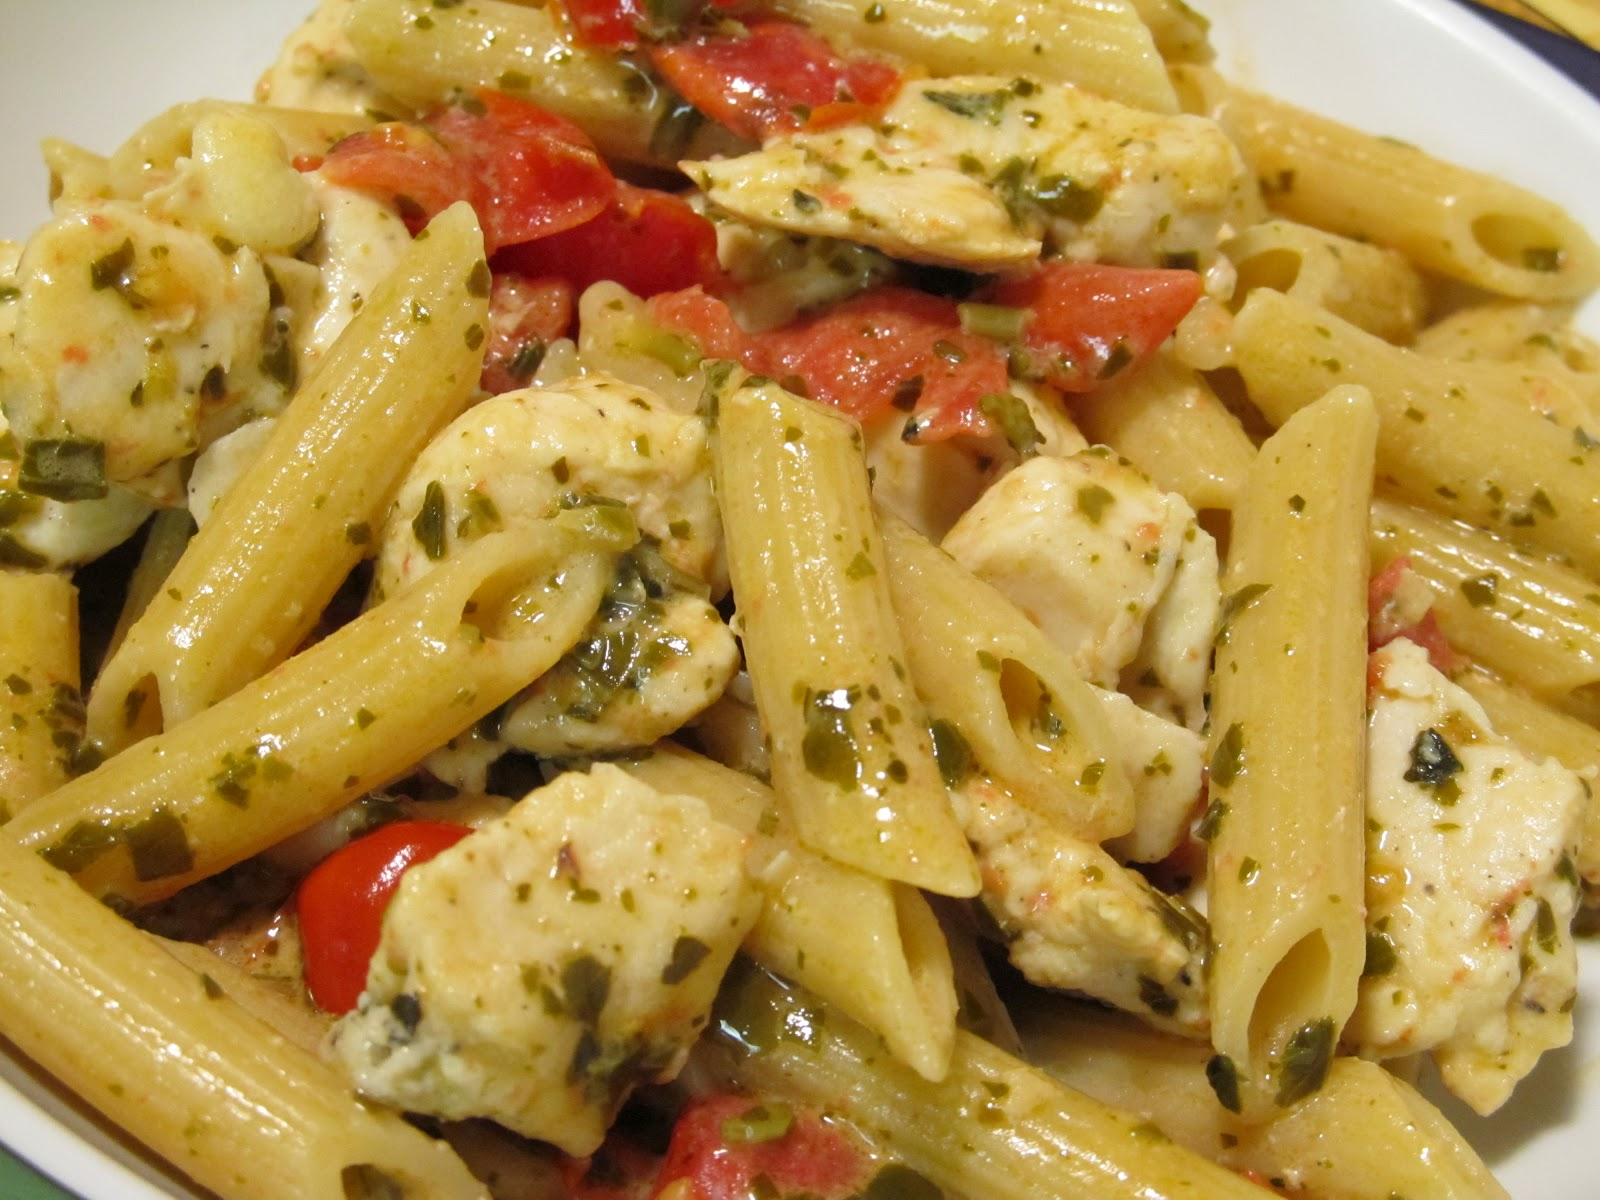 Jenn's Food Journey: Pasta in Pesto Cream with Chicken and Tomatoes